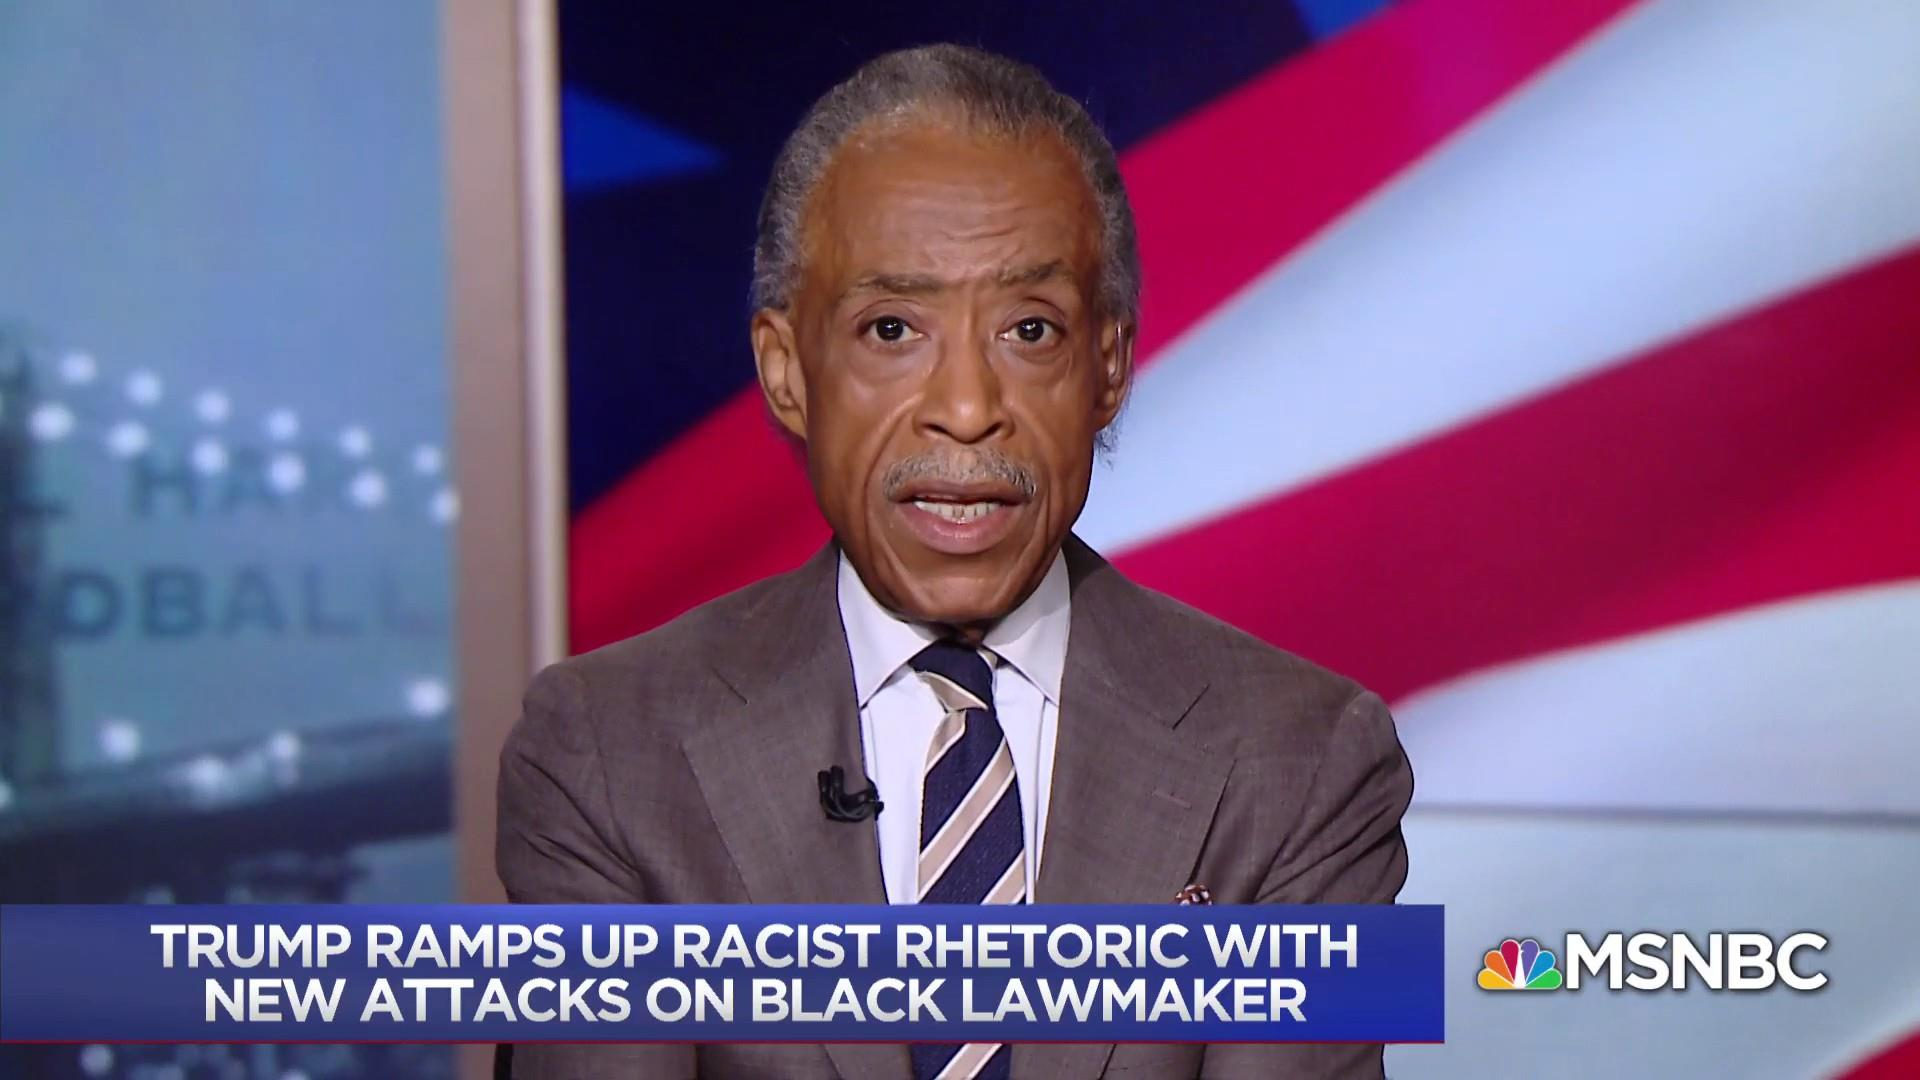 Al Sharpton: If Trump wants a fight, he can come to me first